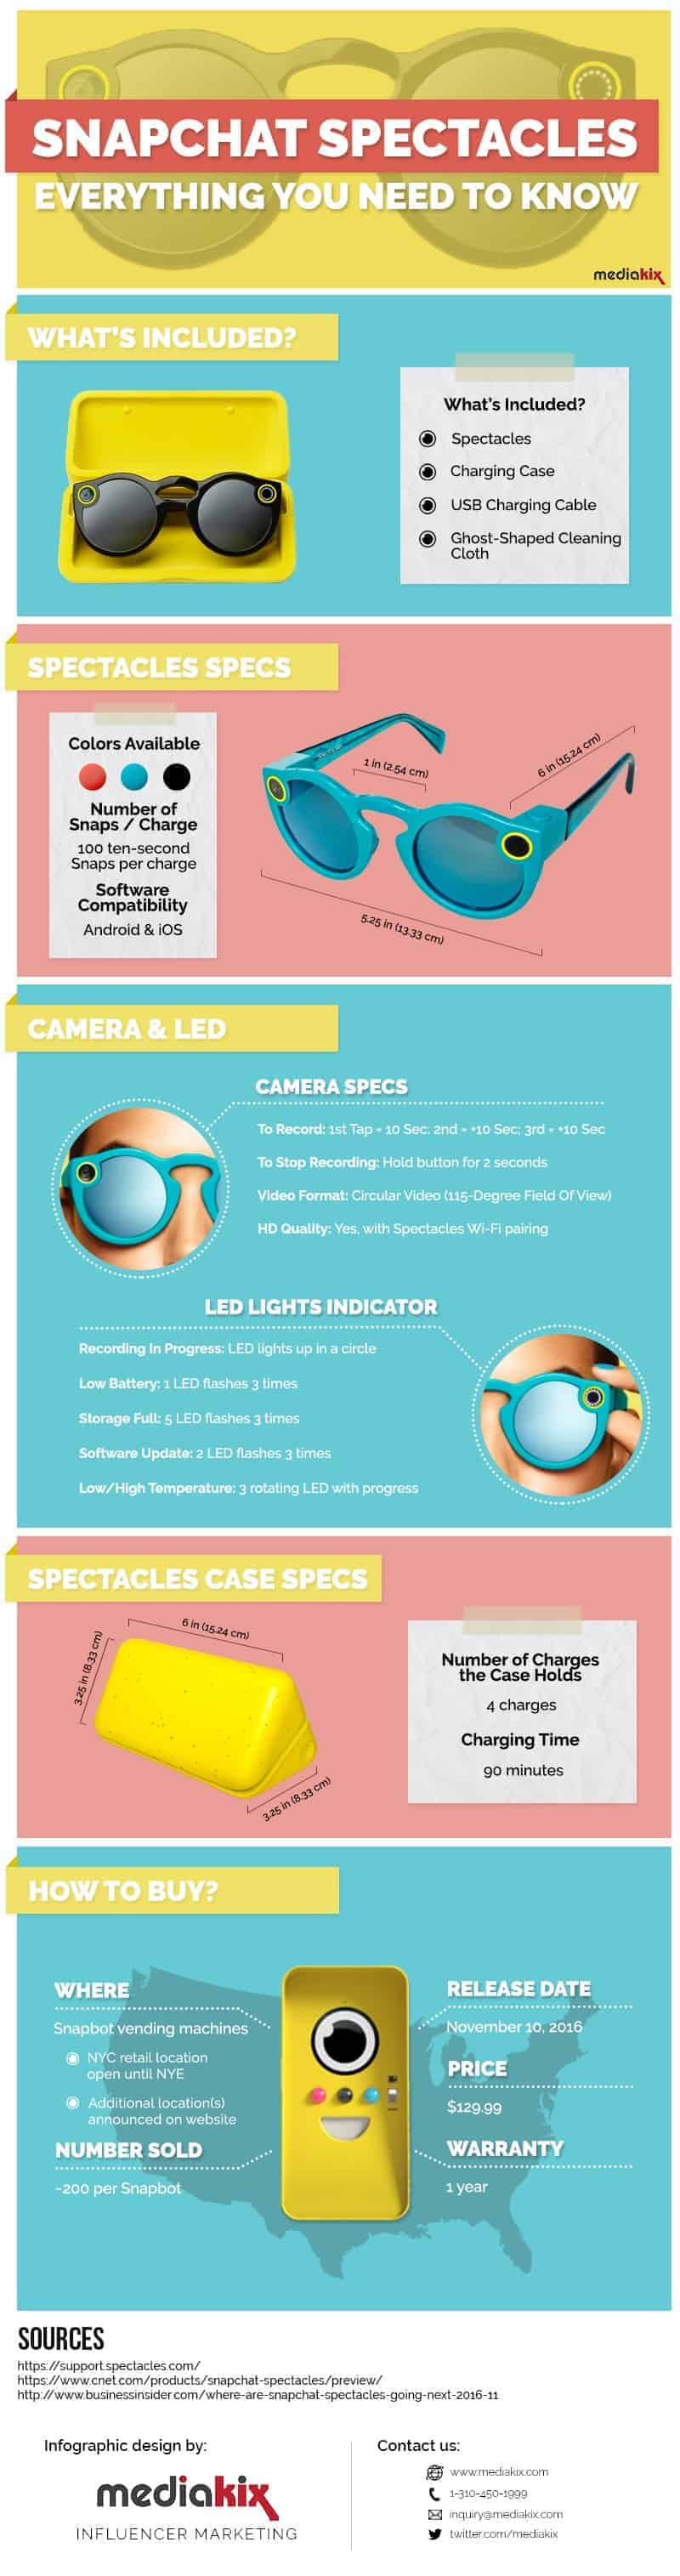 snapchat spectacles infographic